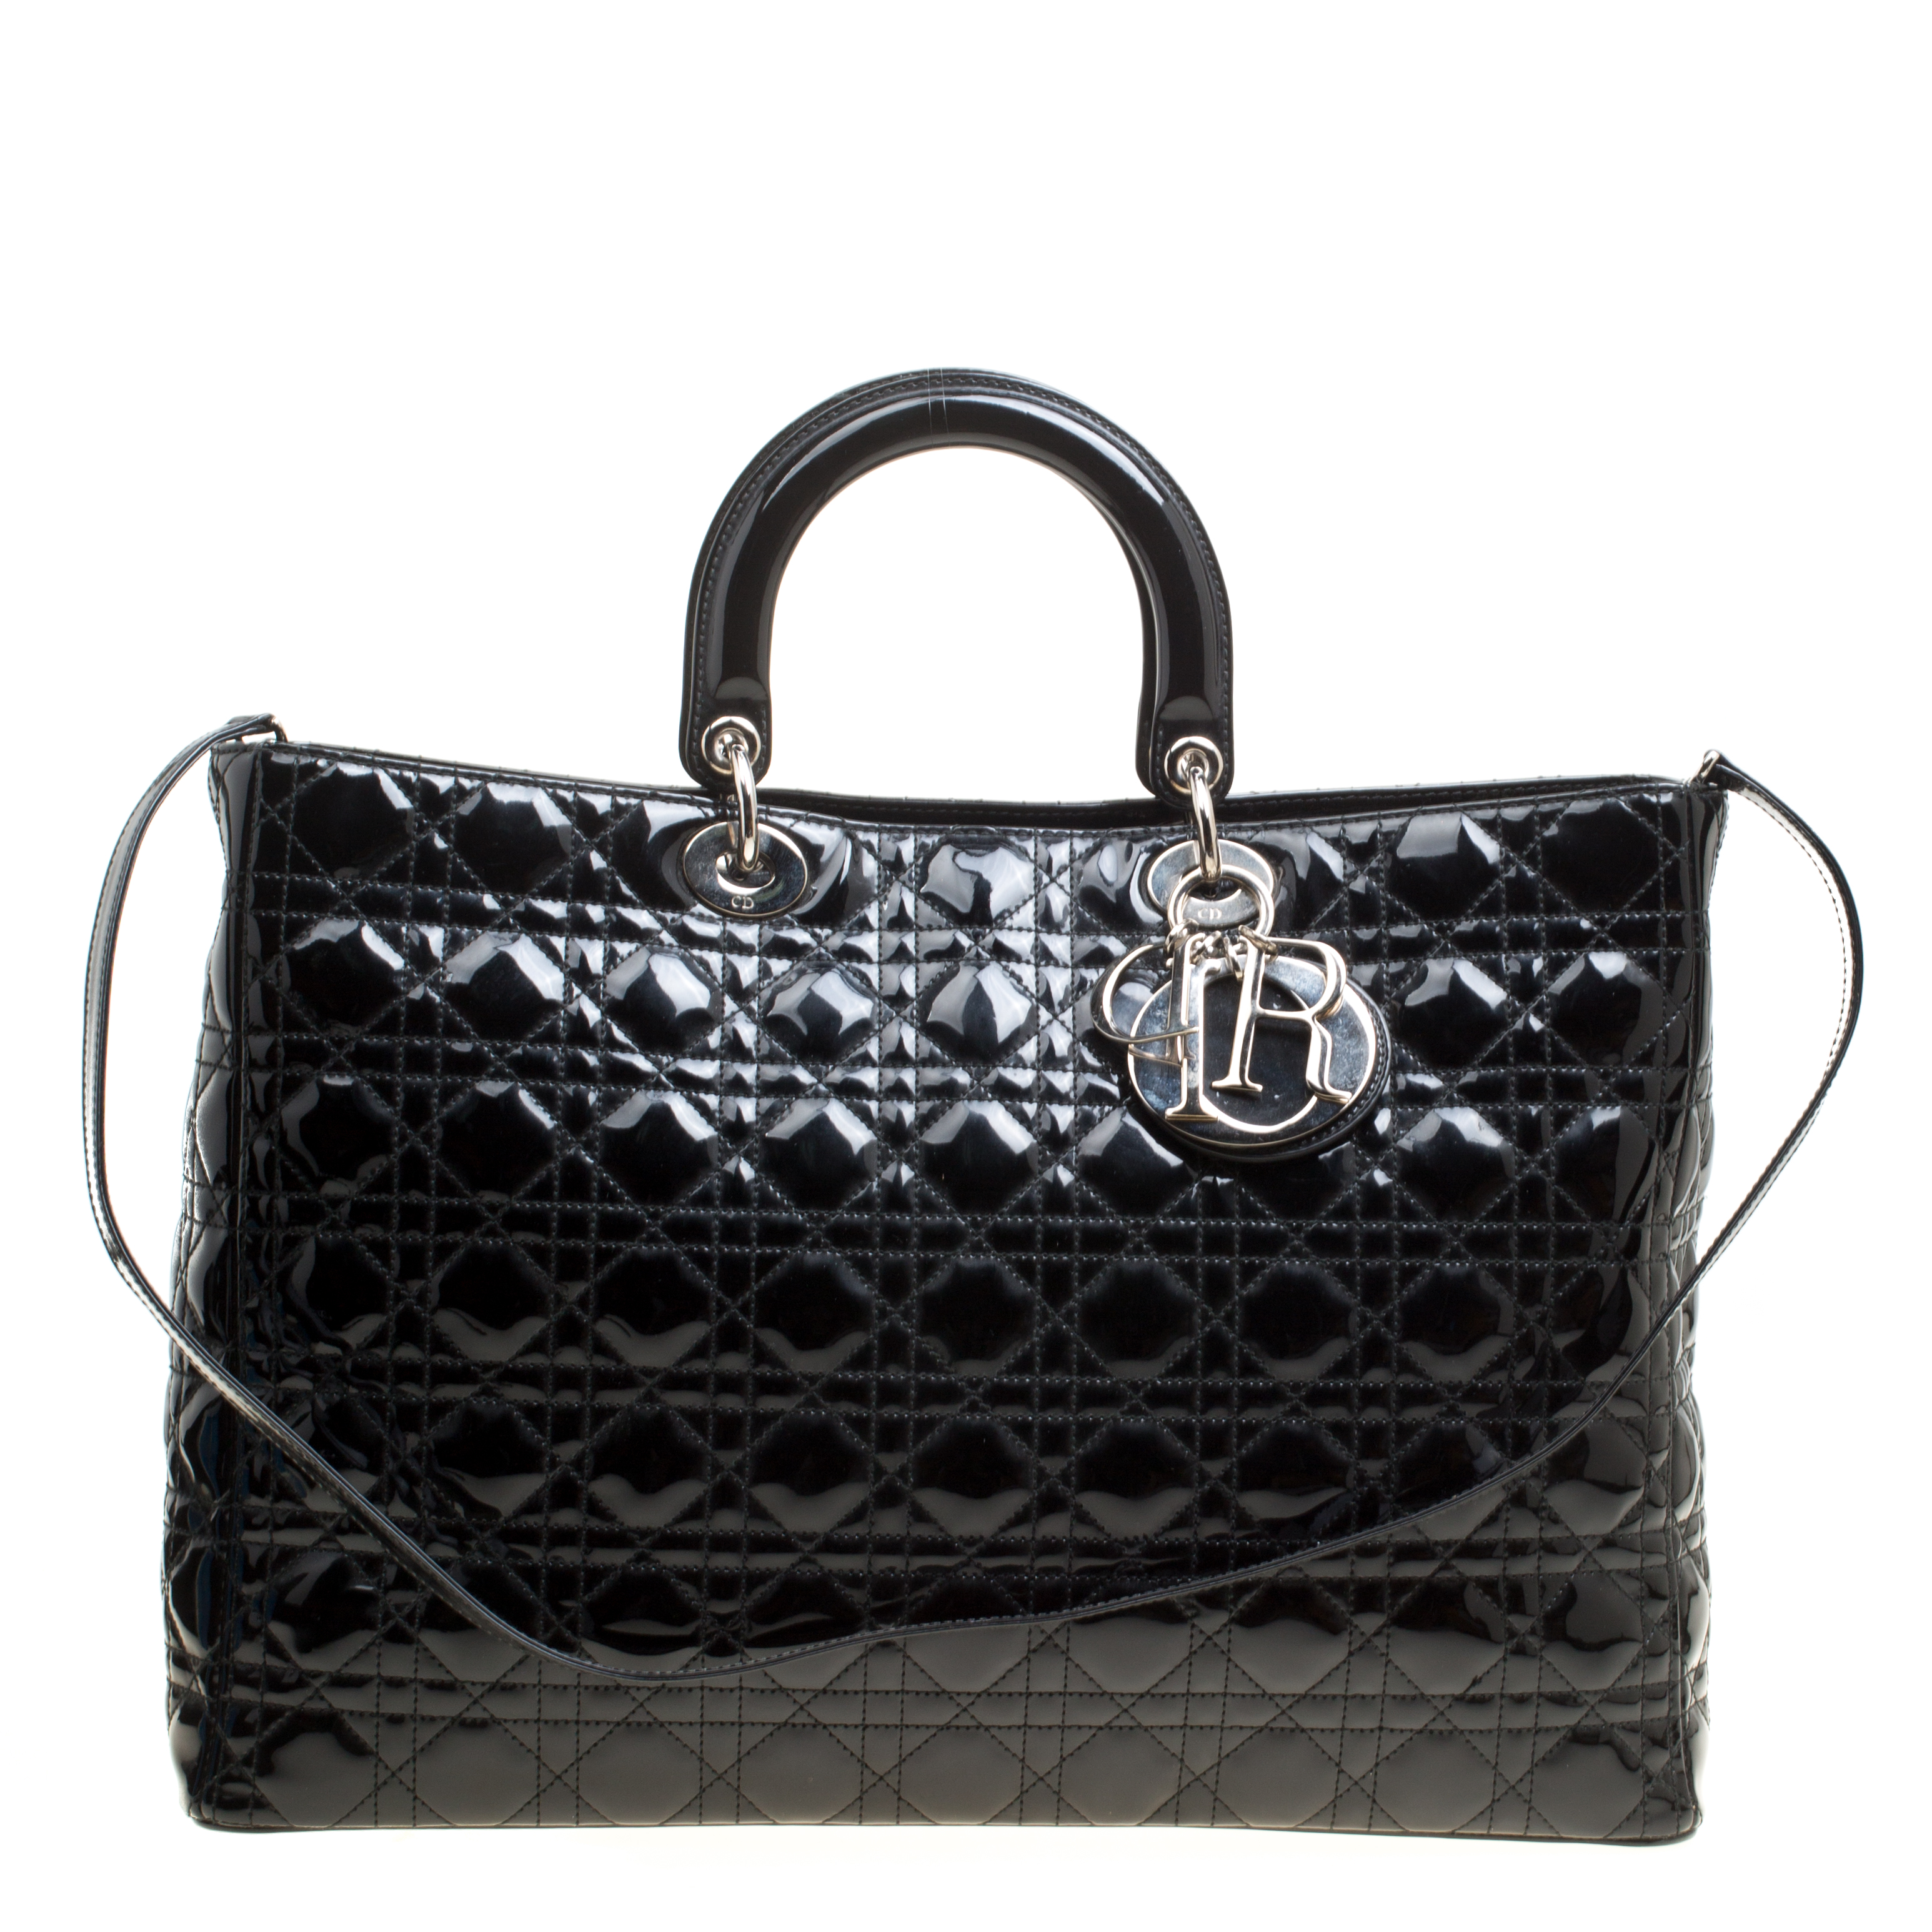 98a539751 Buy Dior Black Patent Leather Extra Large Lady Dior Top Handle Bag ...